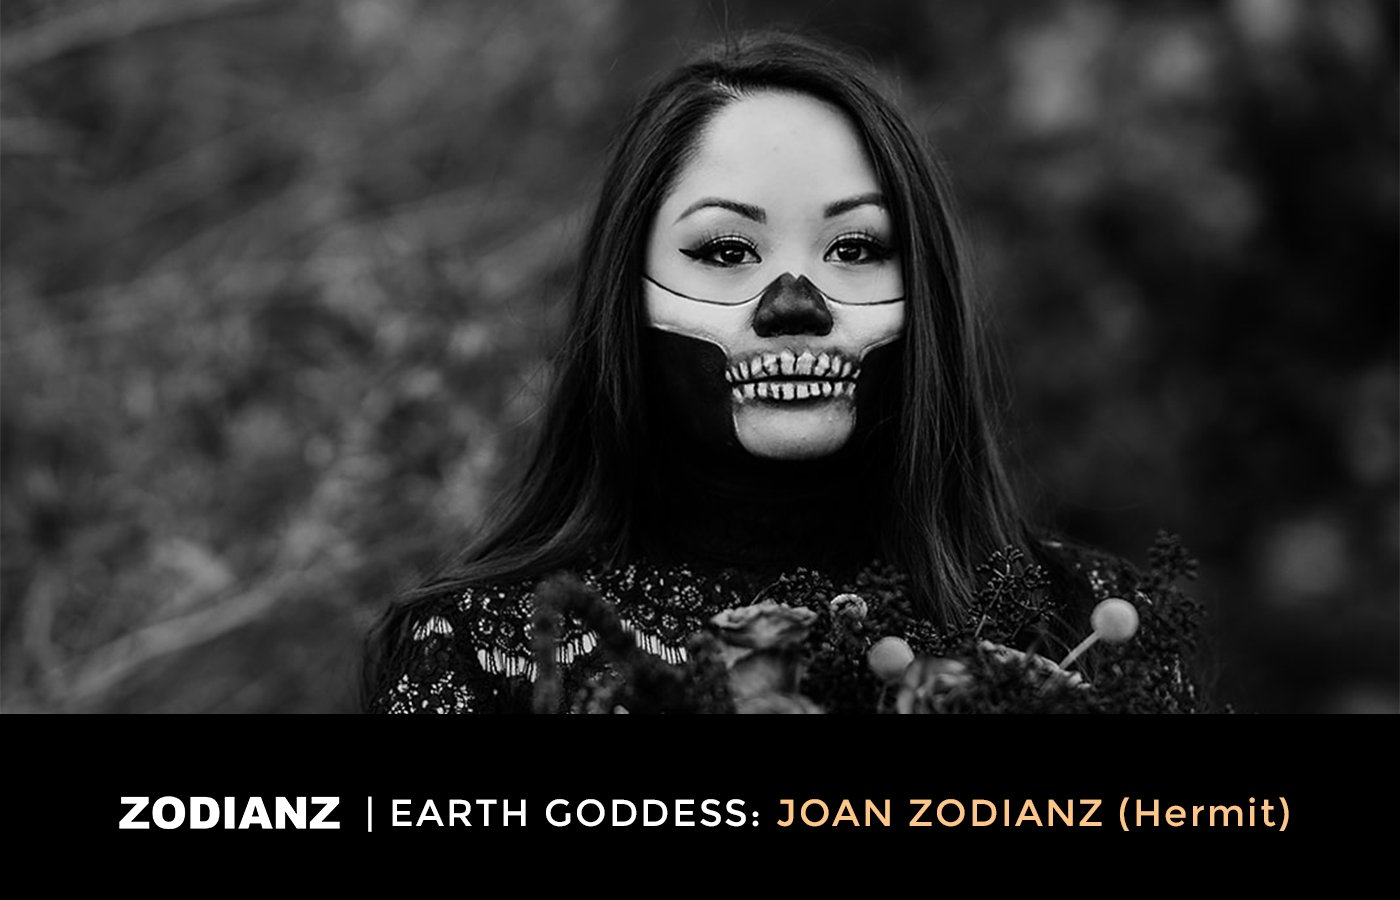 JOAN ZODIANZ EARTH GODDESS